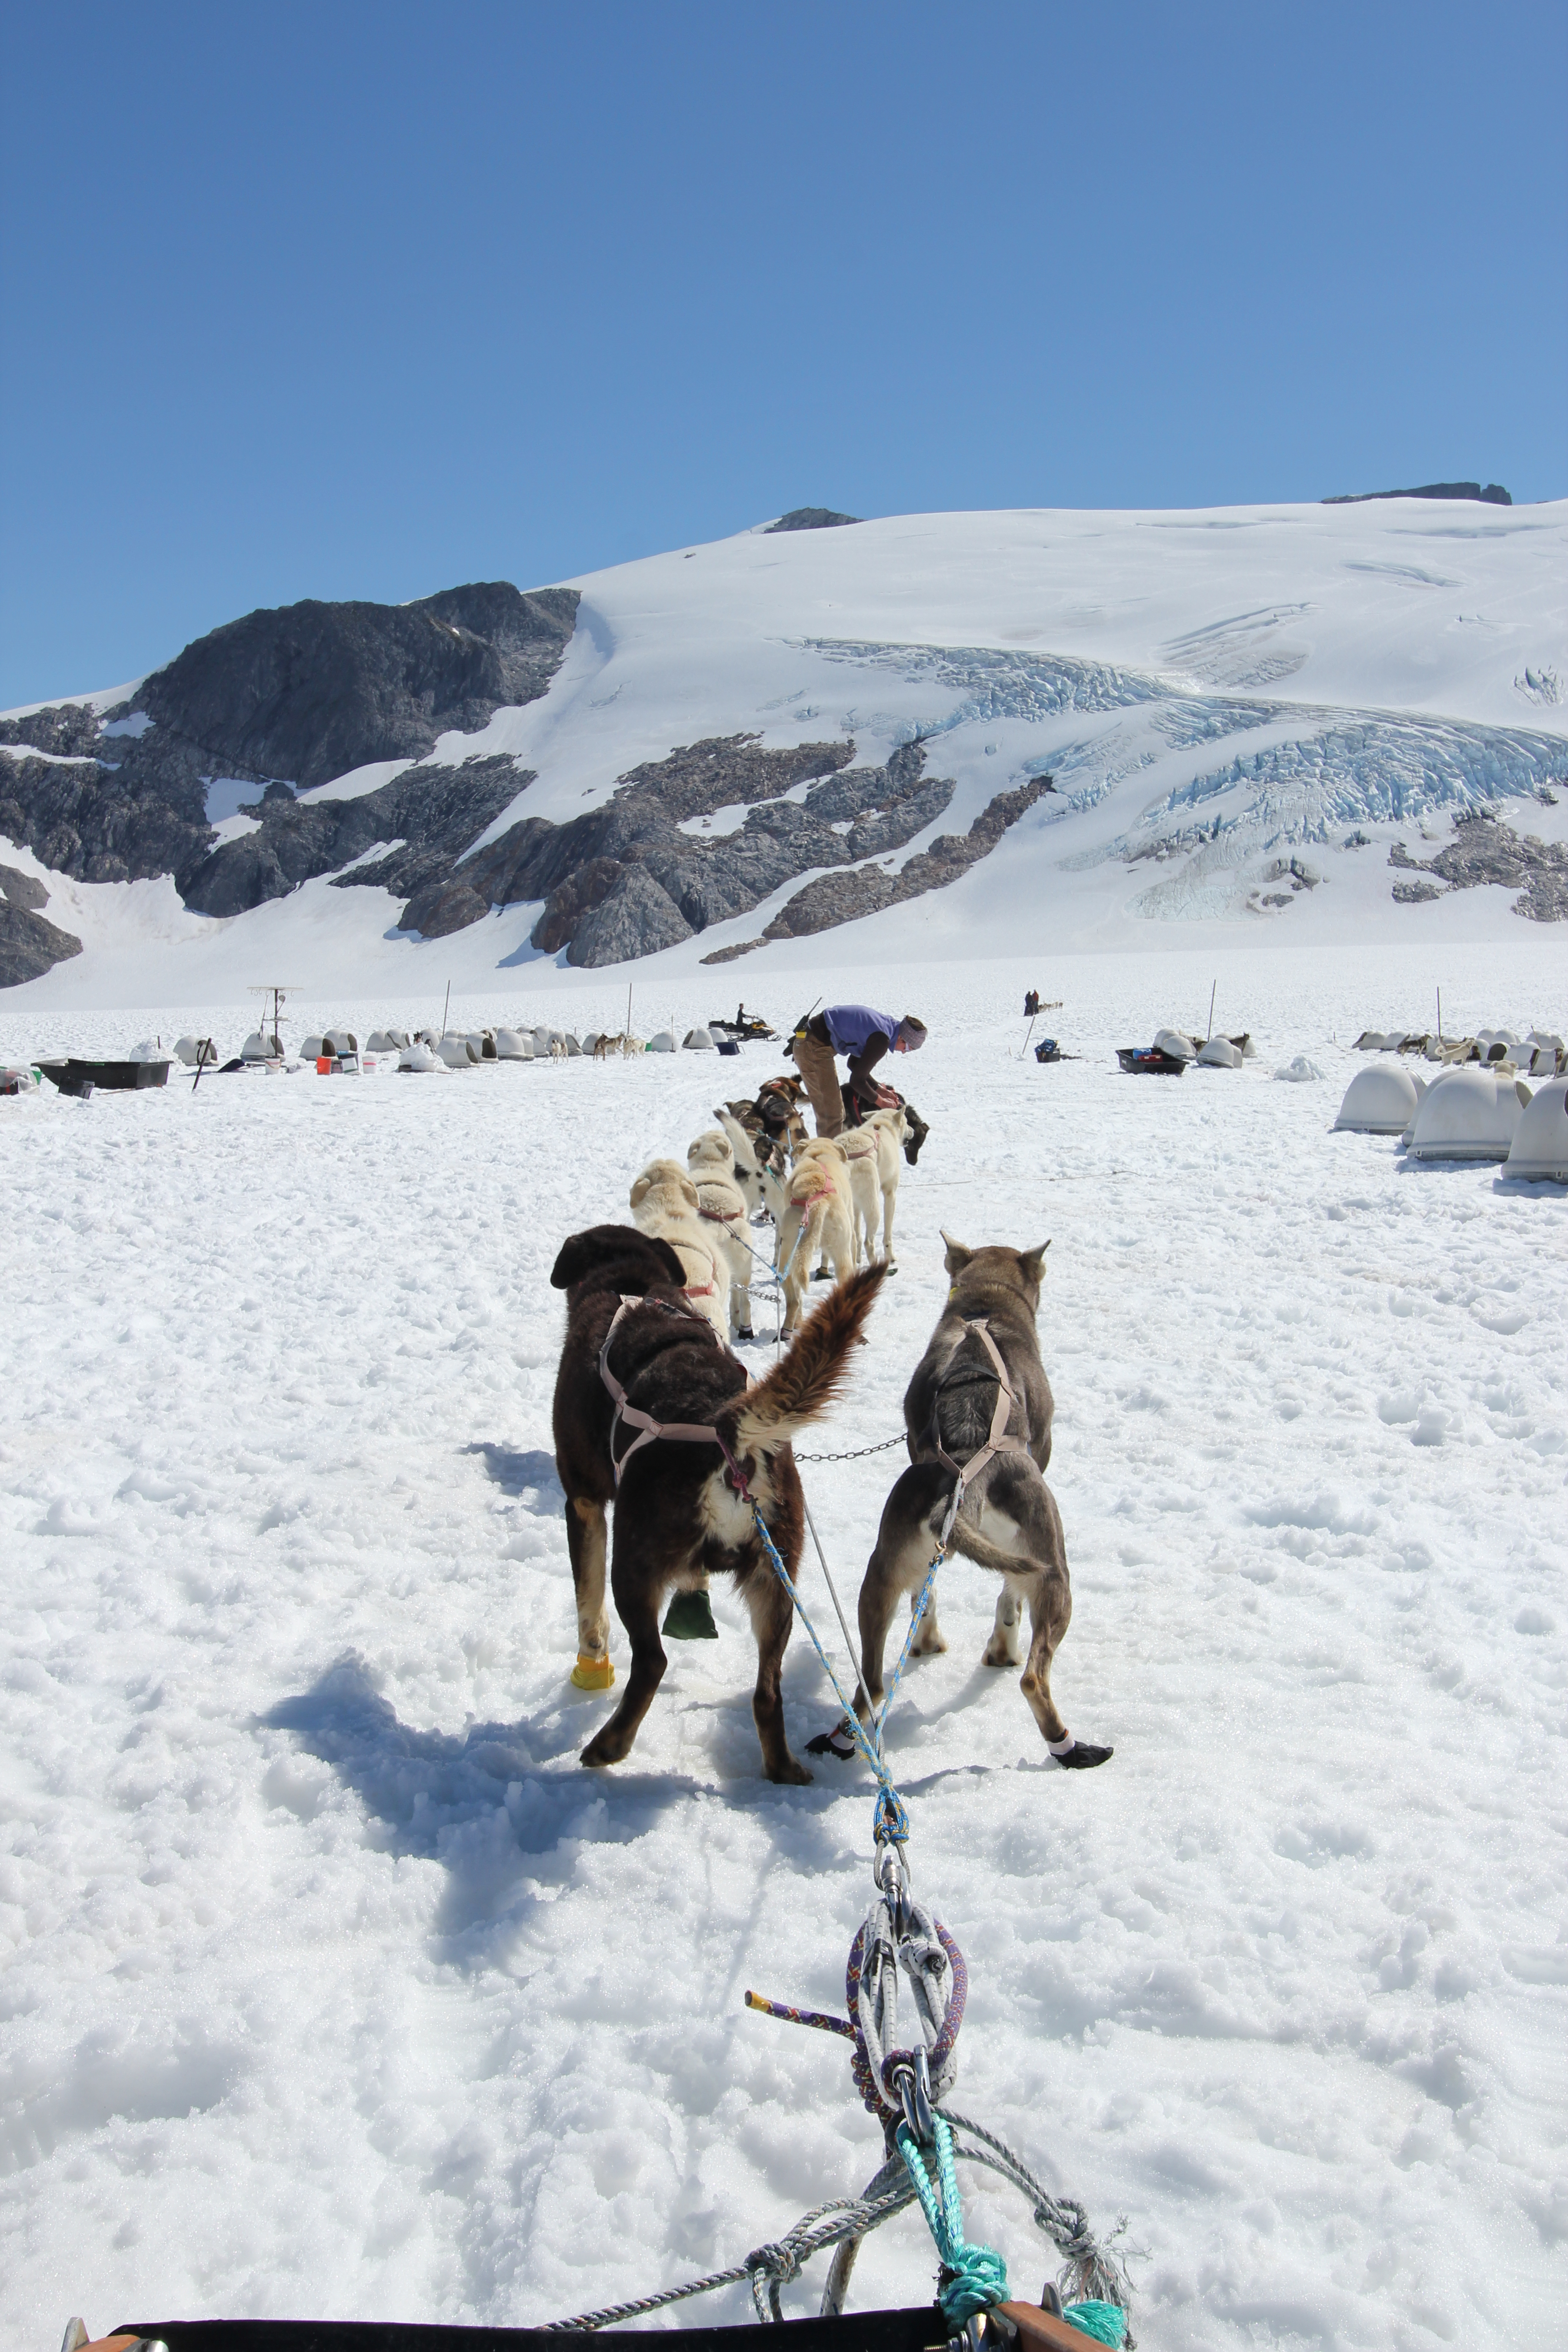 The dogs closest to the sled are the main powerhouse whilst the lead dog is trained as the team direction guide.